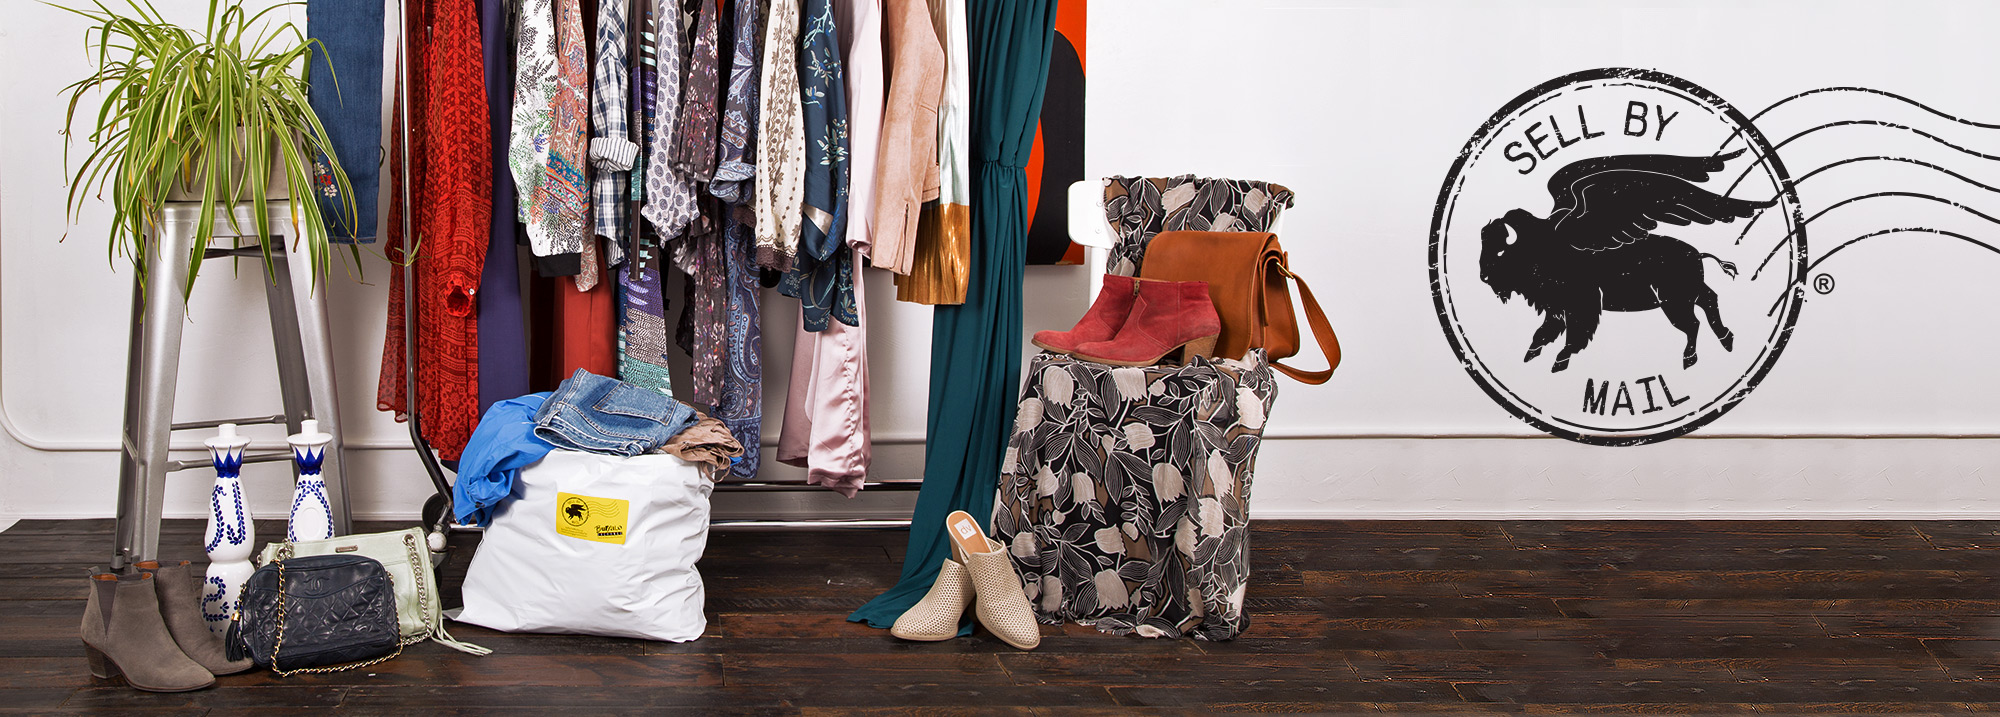 Sell by mail header image with bag of clothing and clothing on a rack